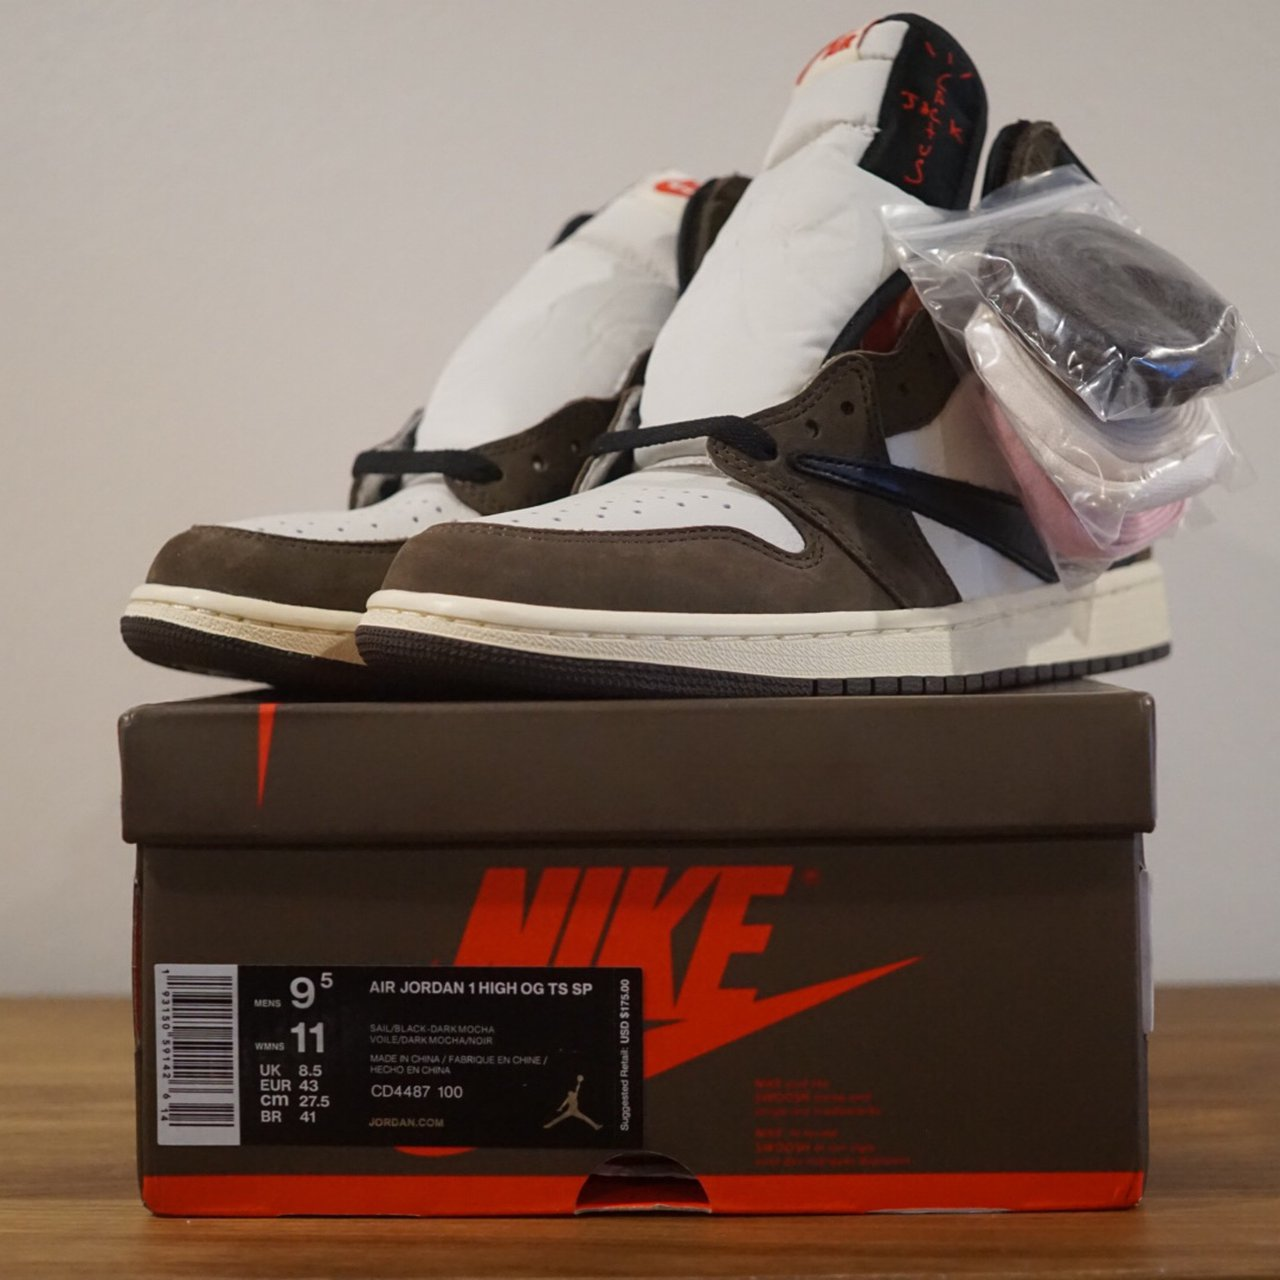 071a2d710f6 Jordan 1 Retro High Travis Scott Deadstock size 9.5 Brand - Depop